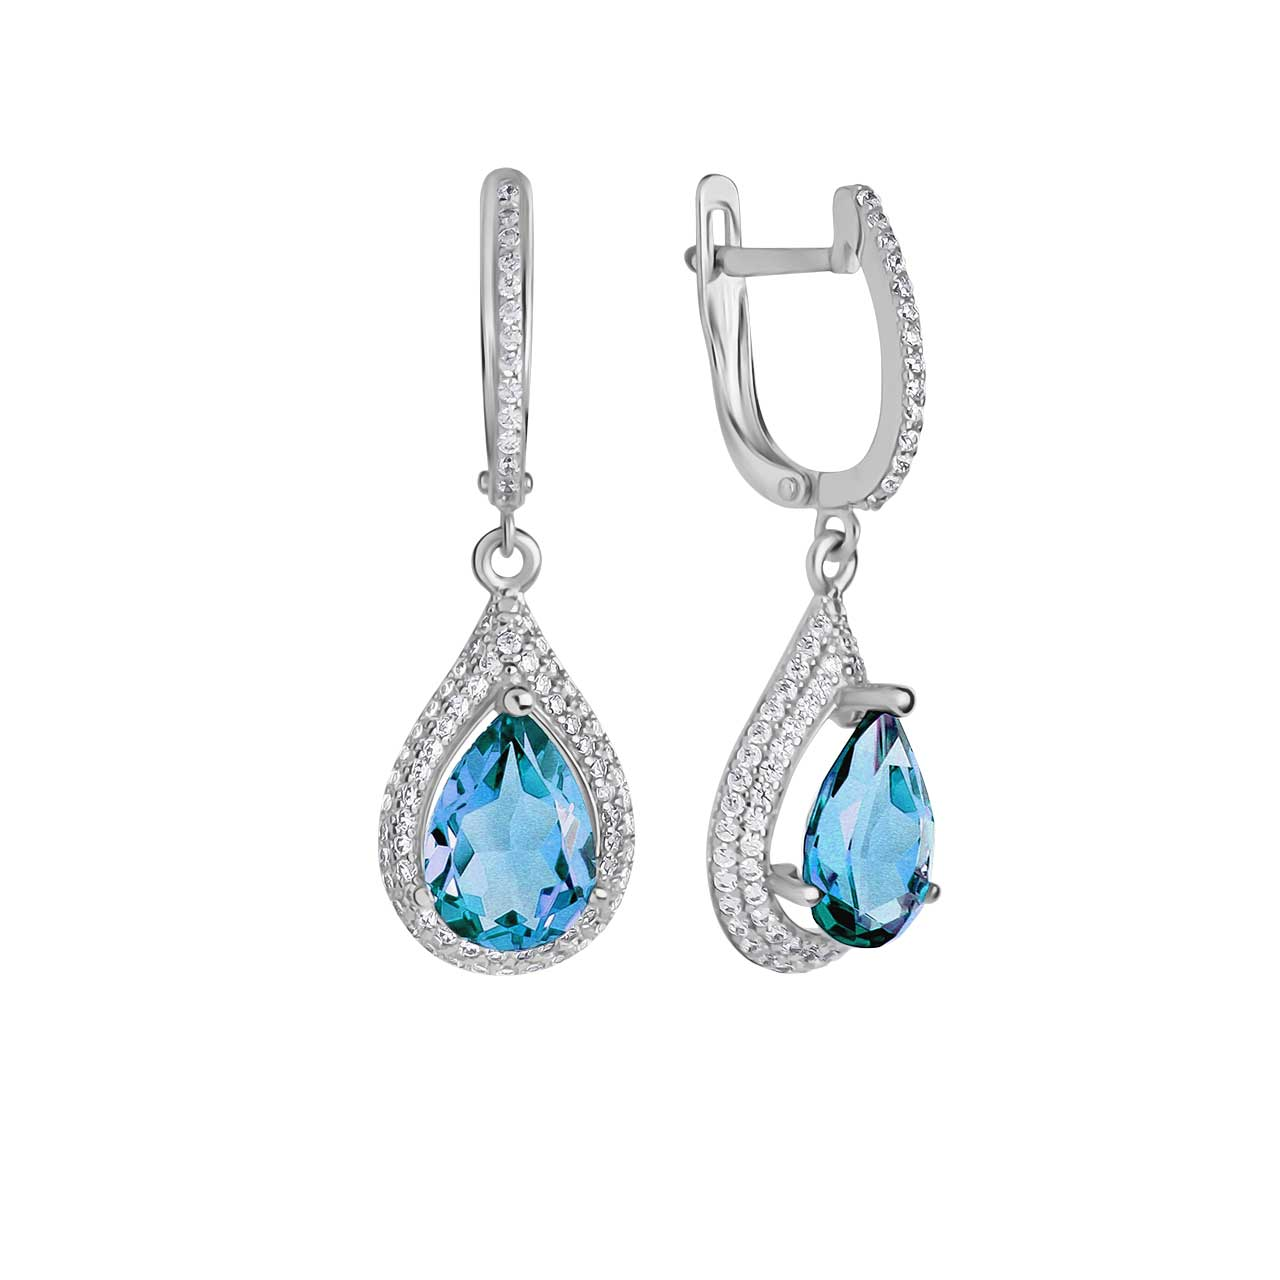 Blue topaz teardrop earrings 1